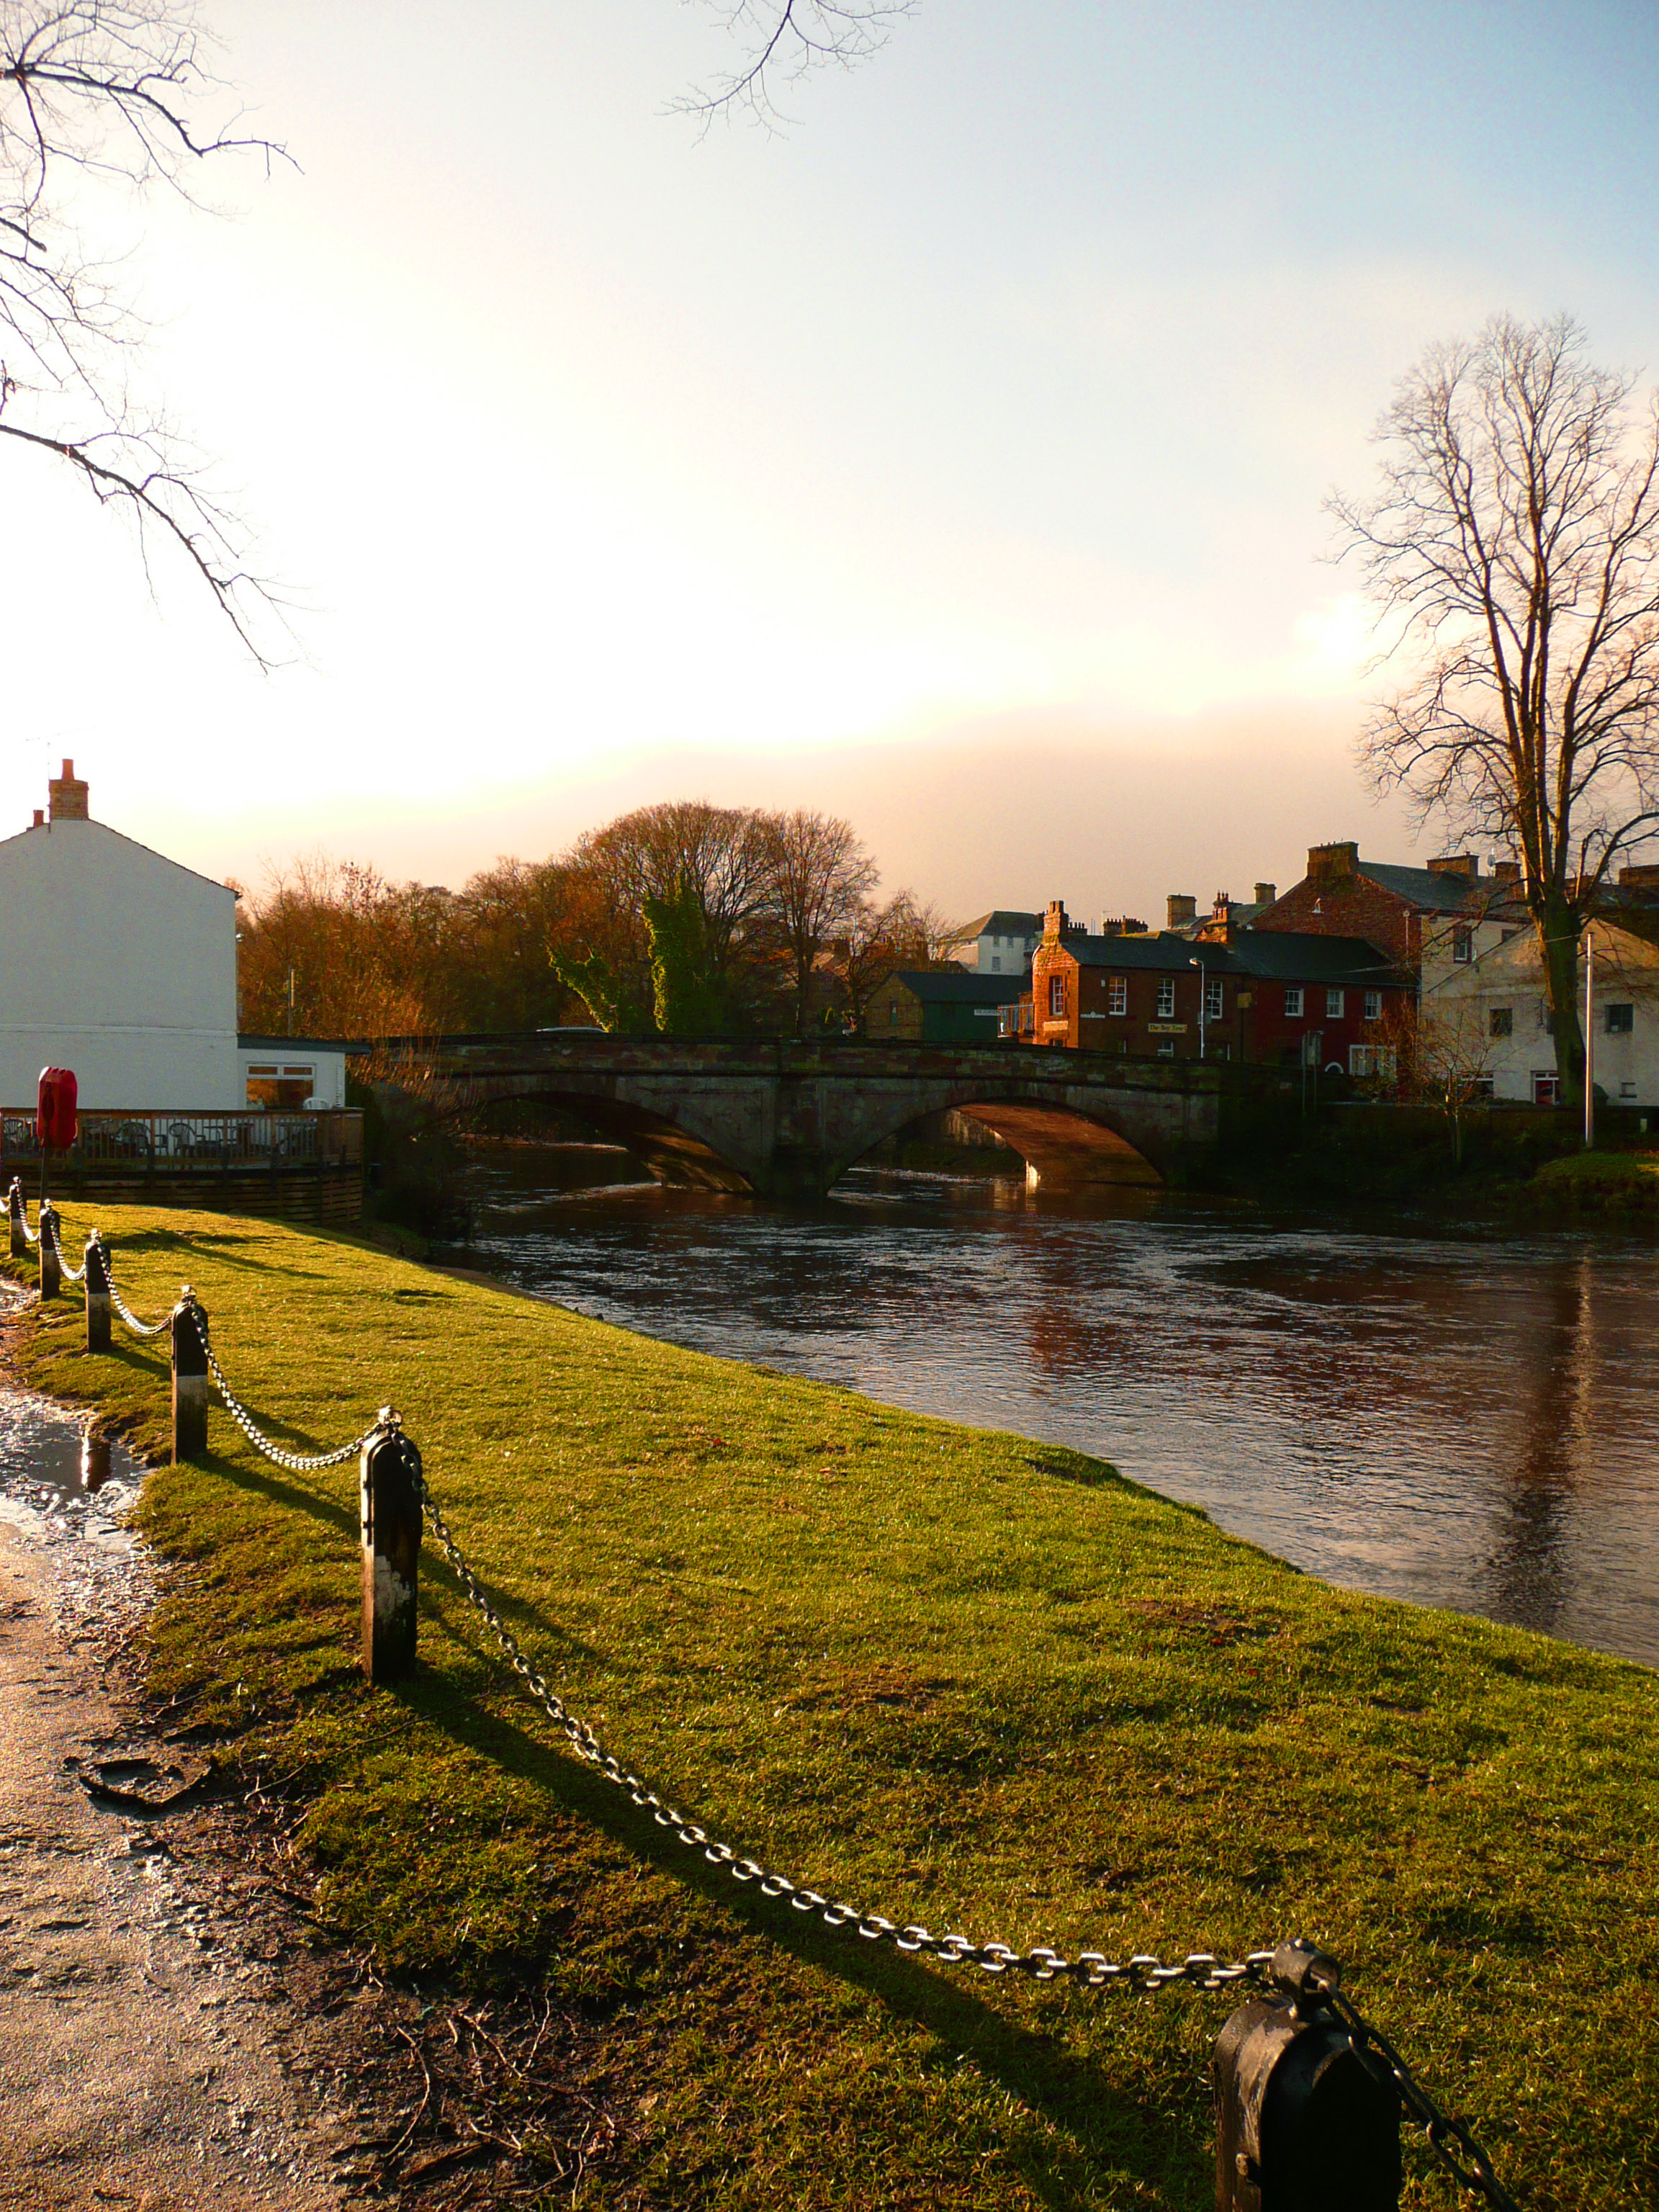 River Eden at sunrise, Appleby-in-Westmoreland